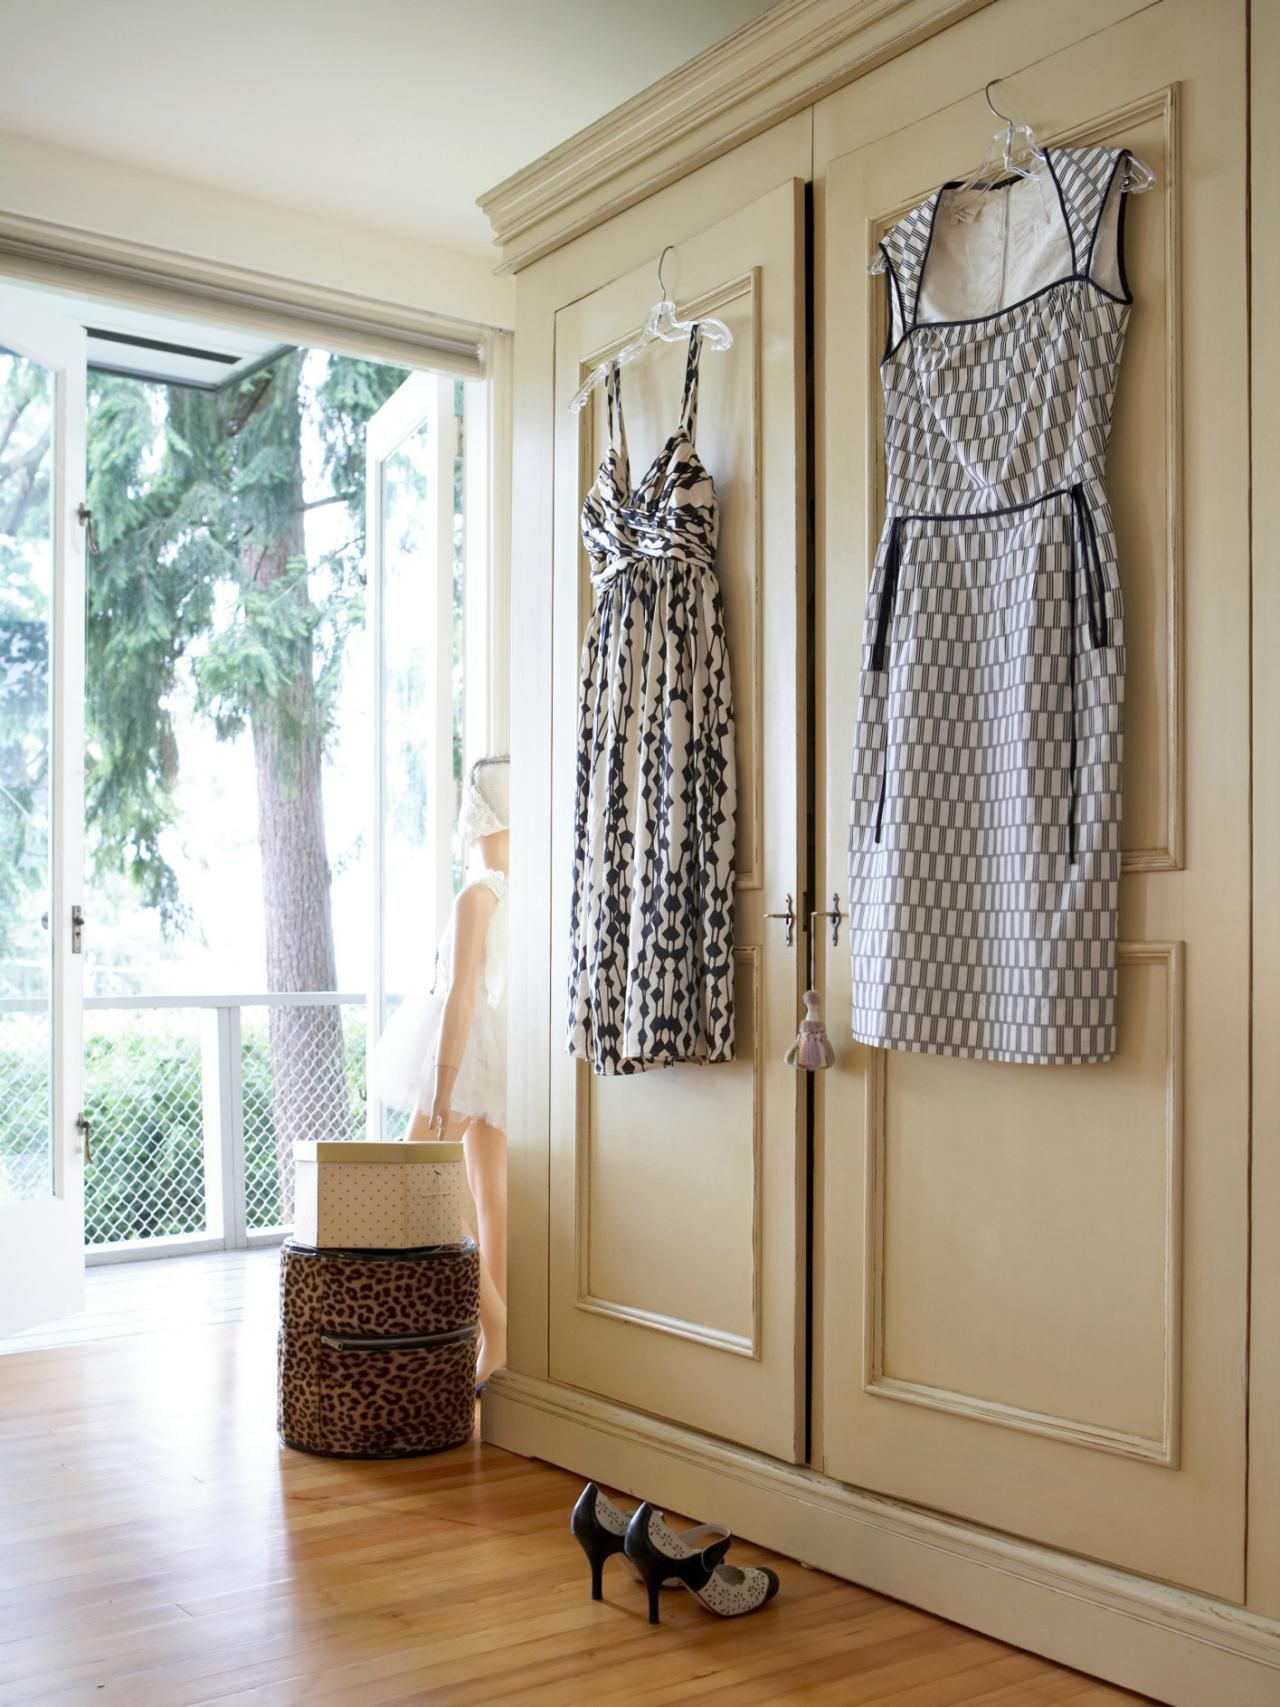 Use Glue Paint Or Paper Draw Cartoons To Add Some Theatrical Touches Place Your Closet Doors Center Stage Description From Homeguides Sfgate